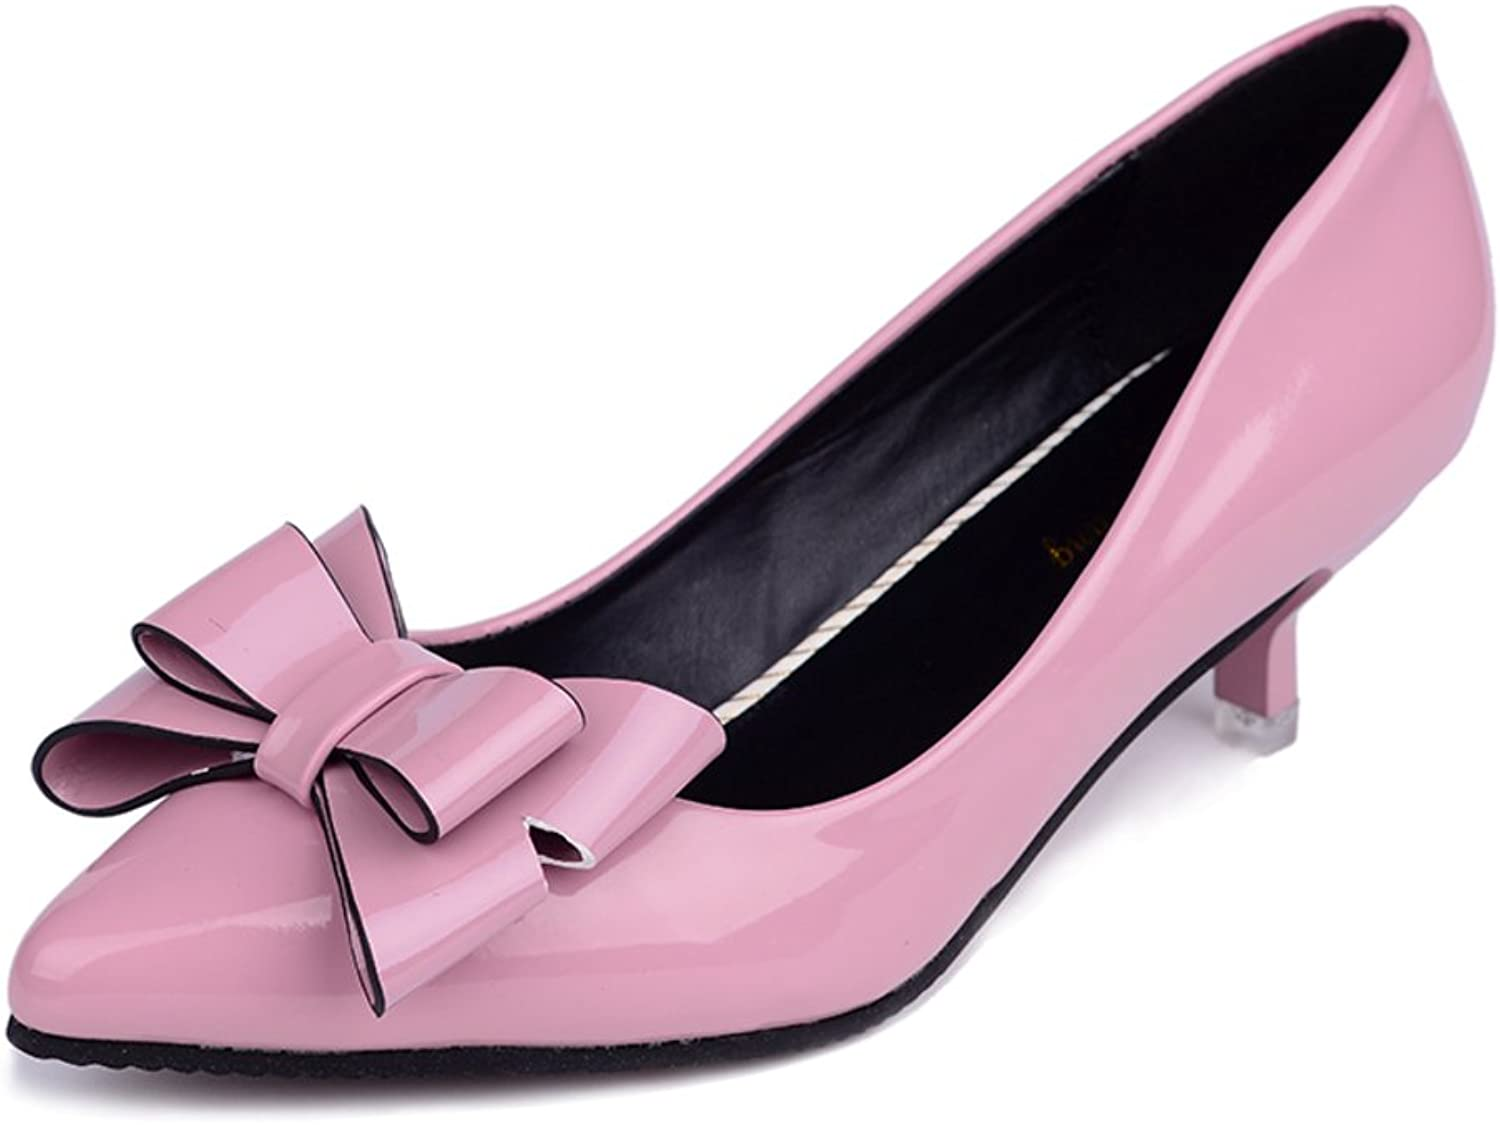 Huhuj Pointy shoes Light Comfortable Bow Stiletto shoes